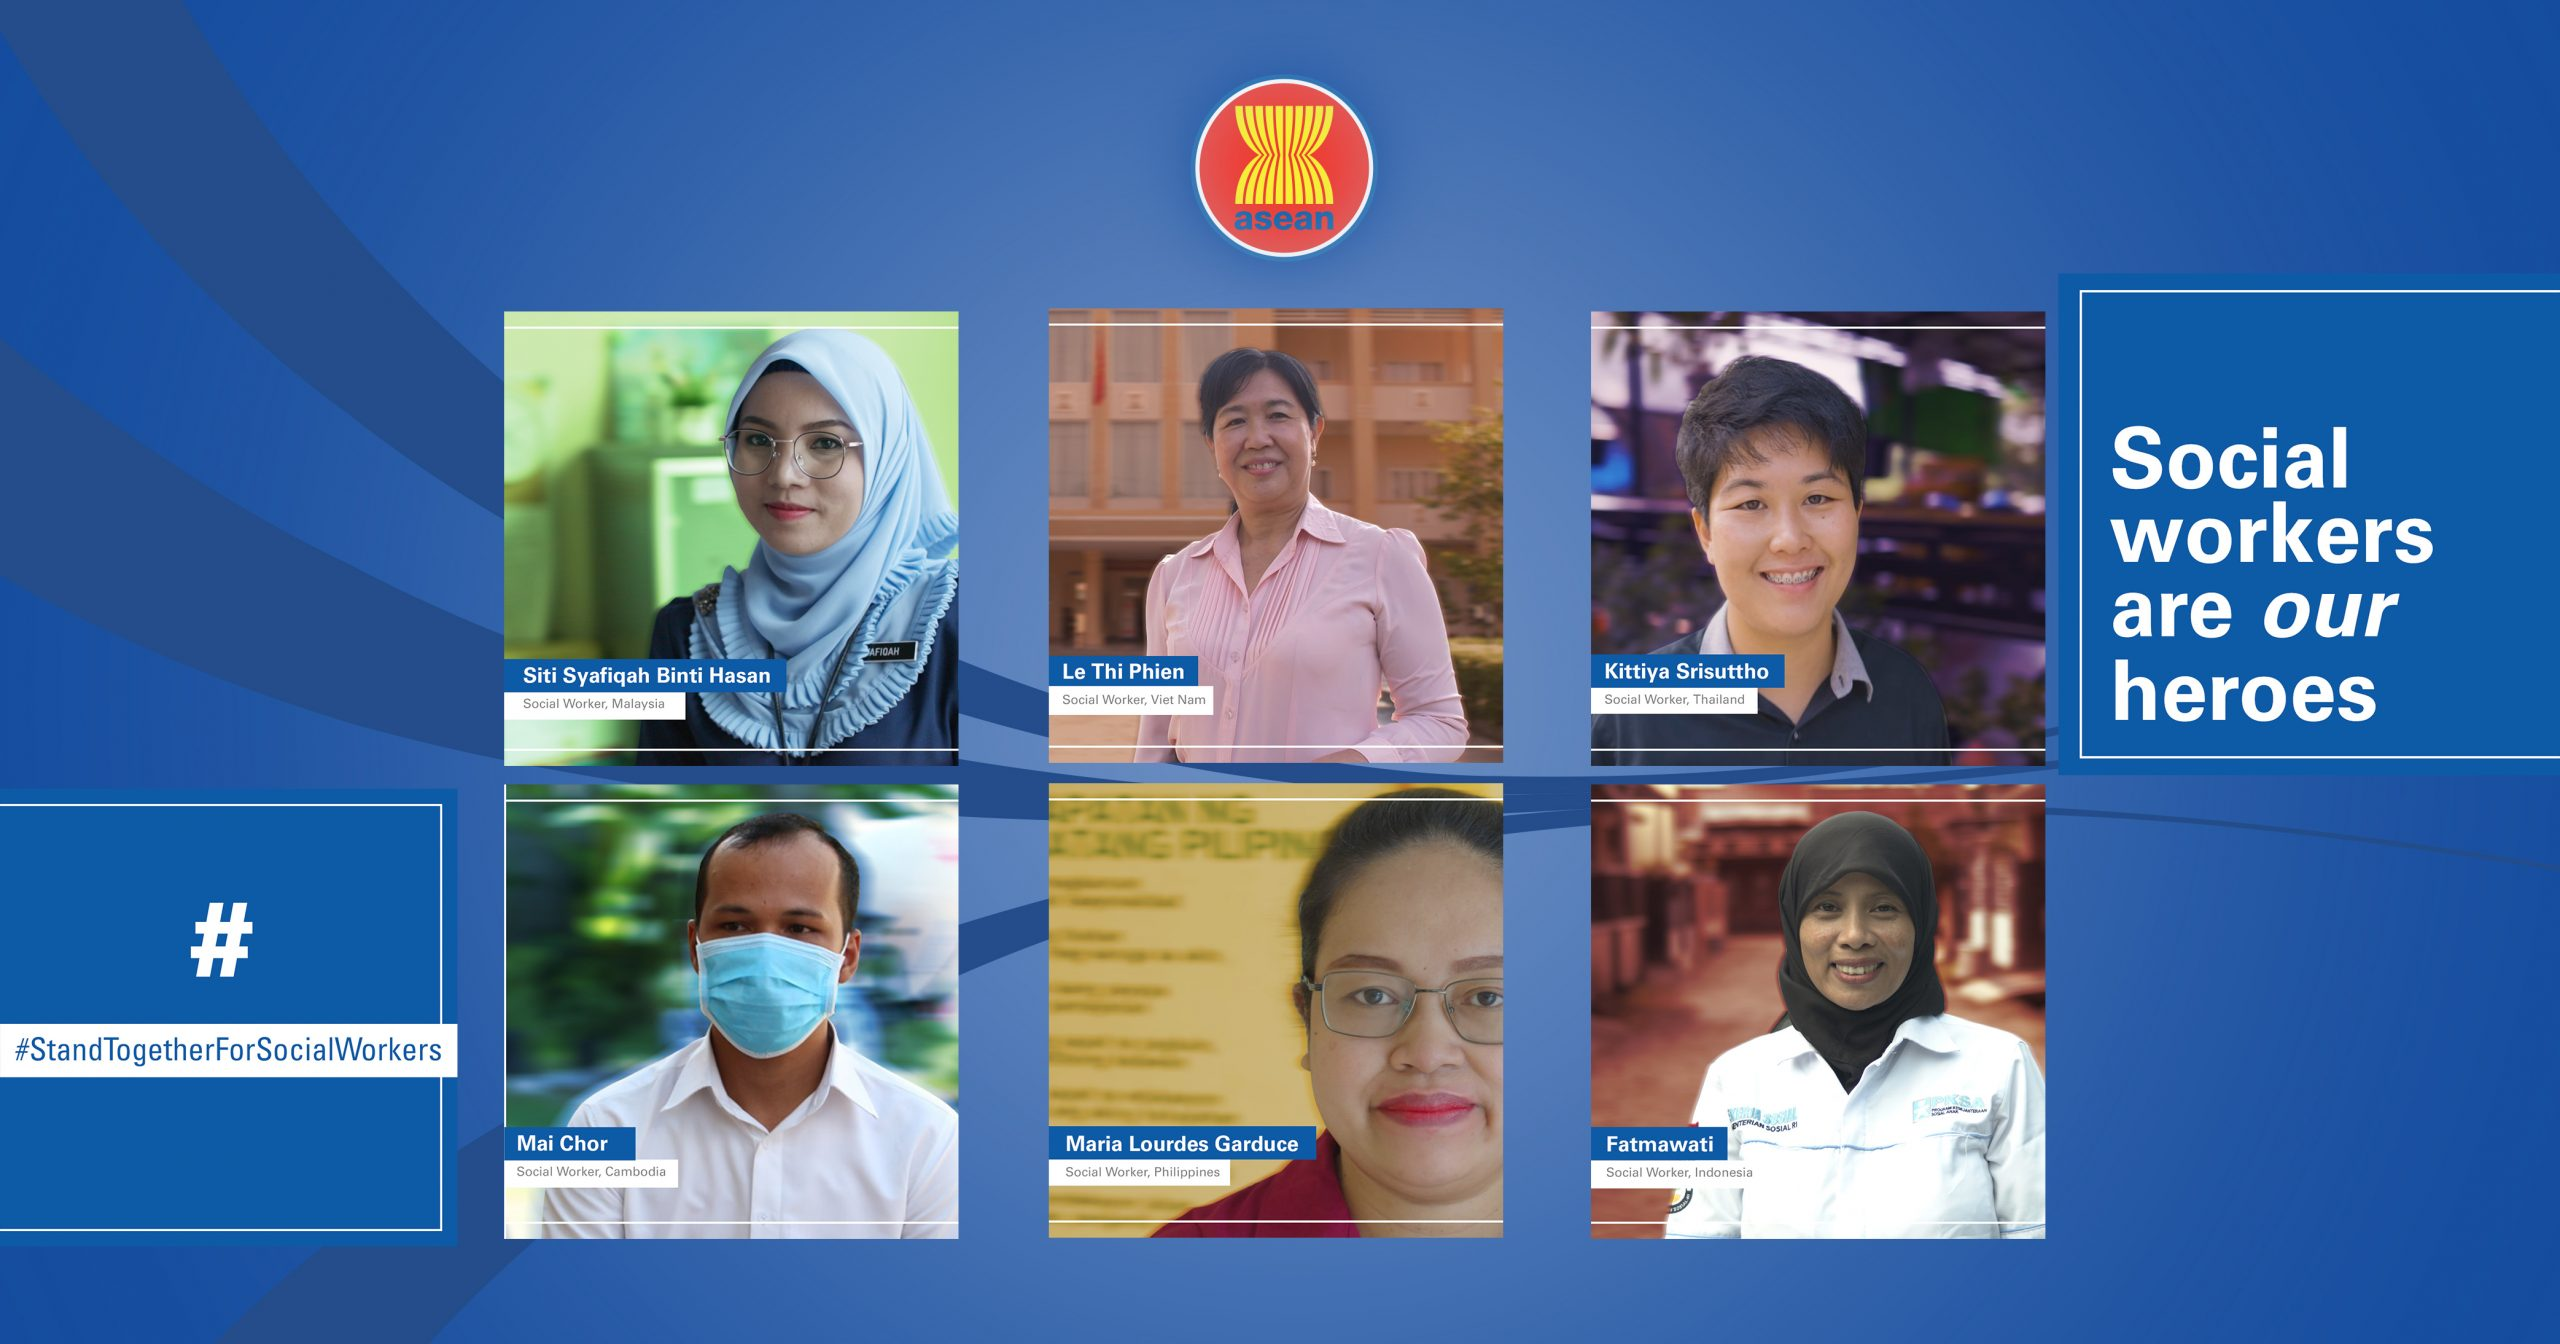 ASEAN, UNICEF launch campaign to promote social work